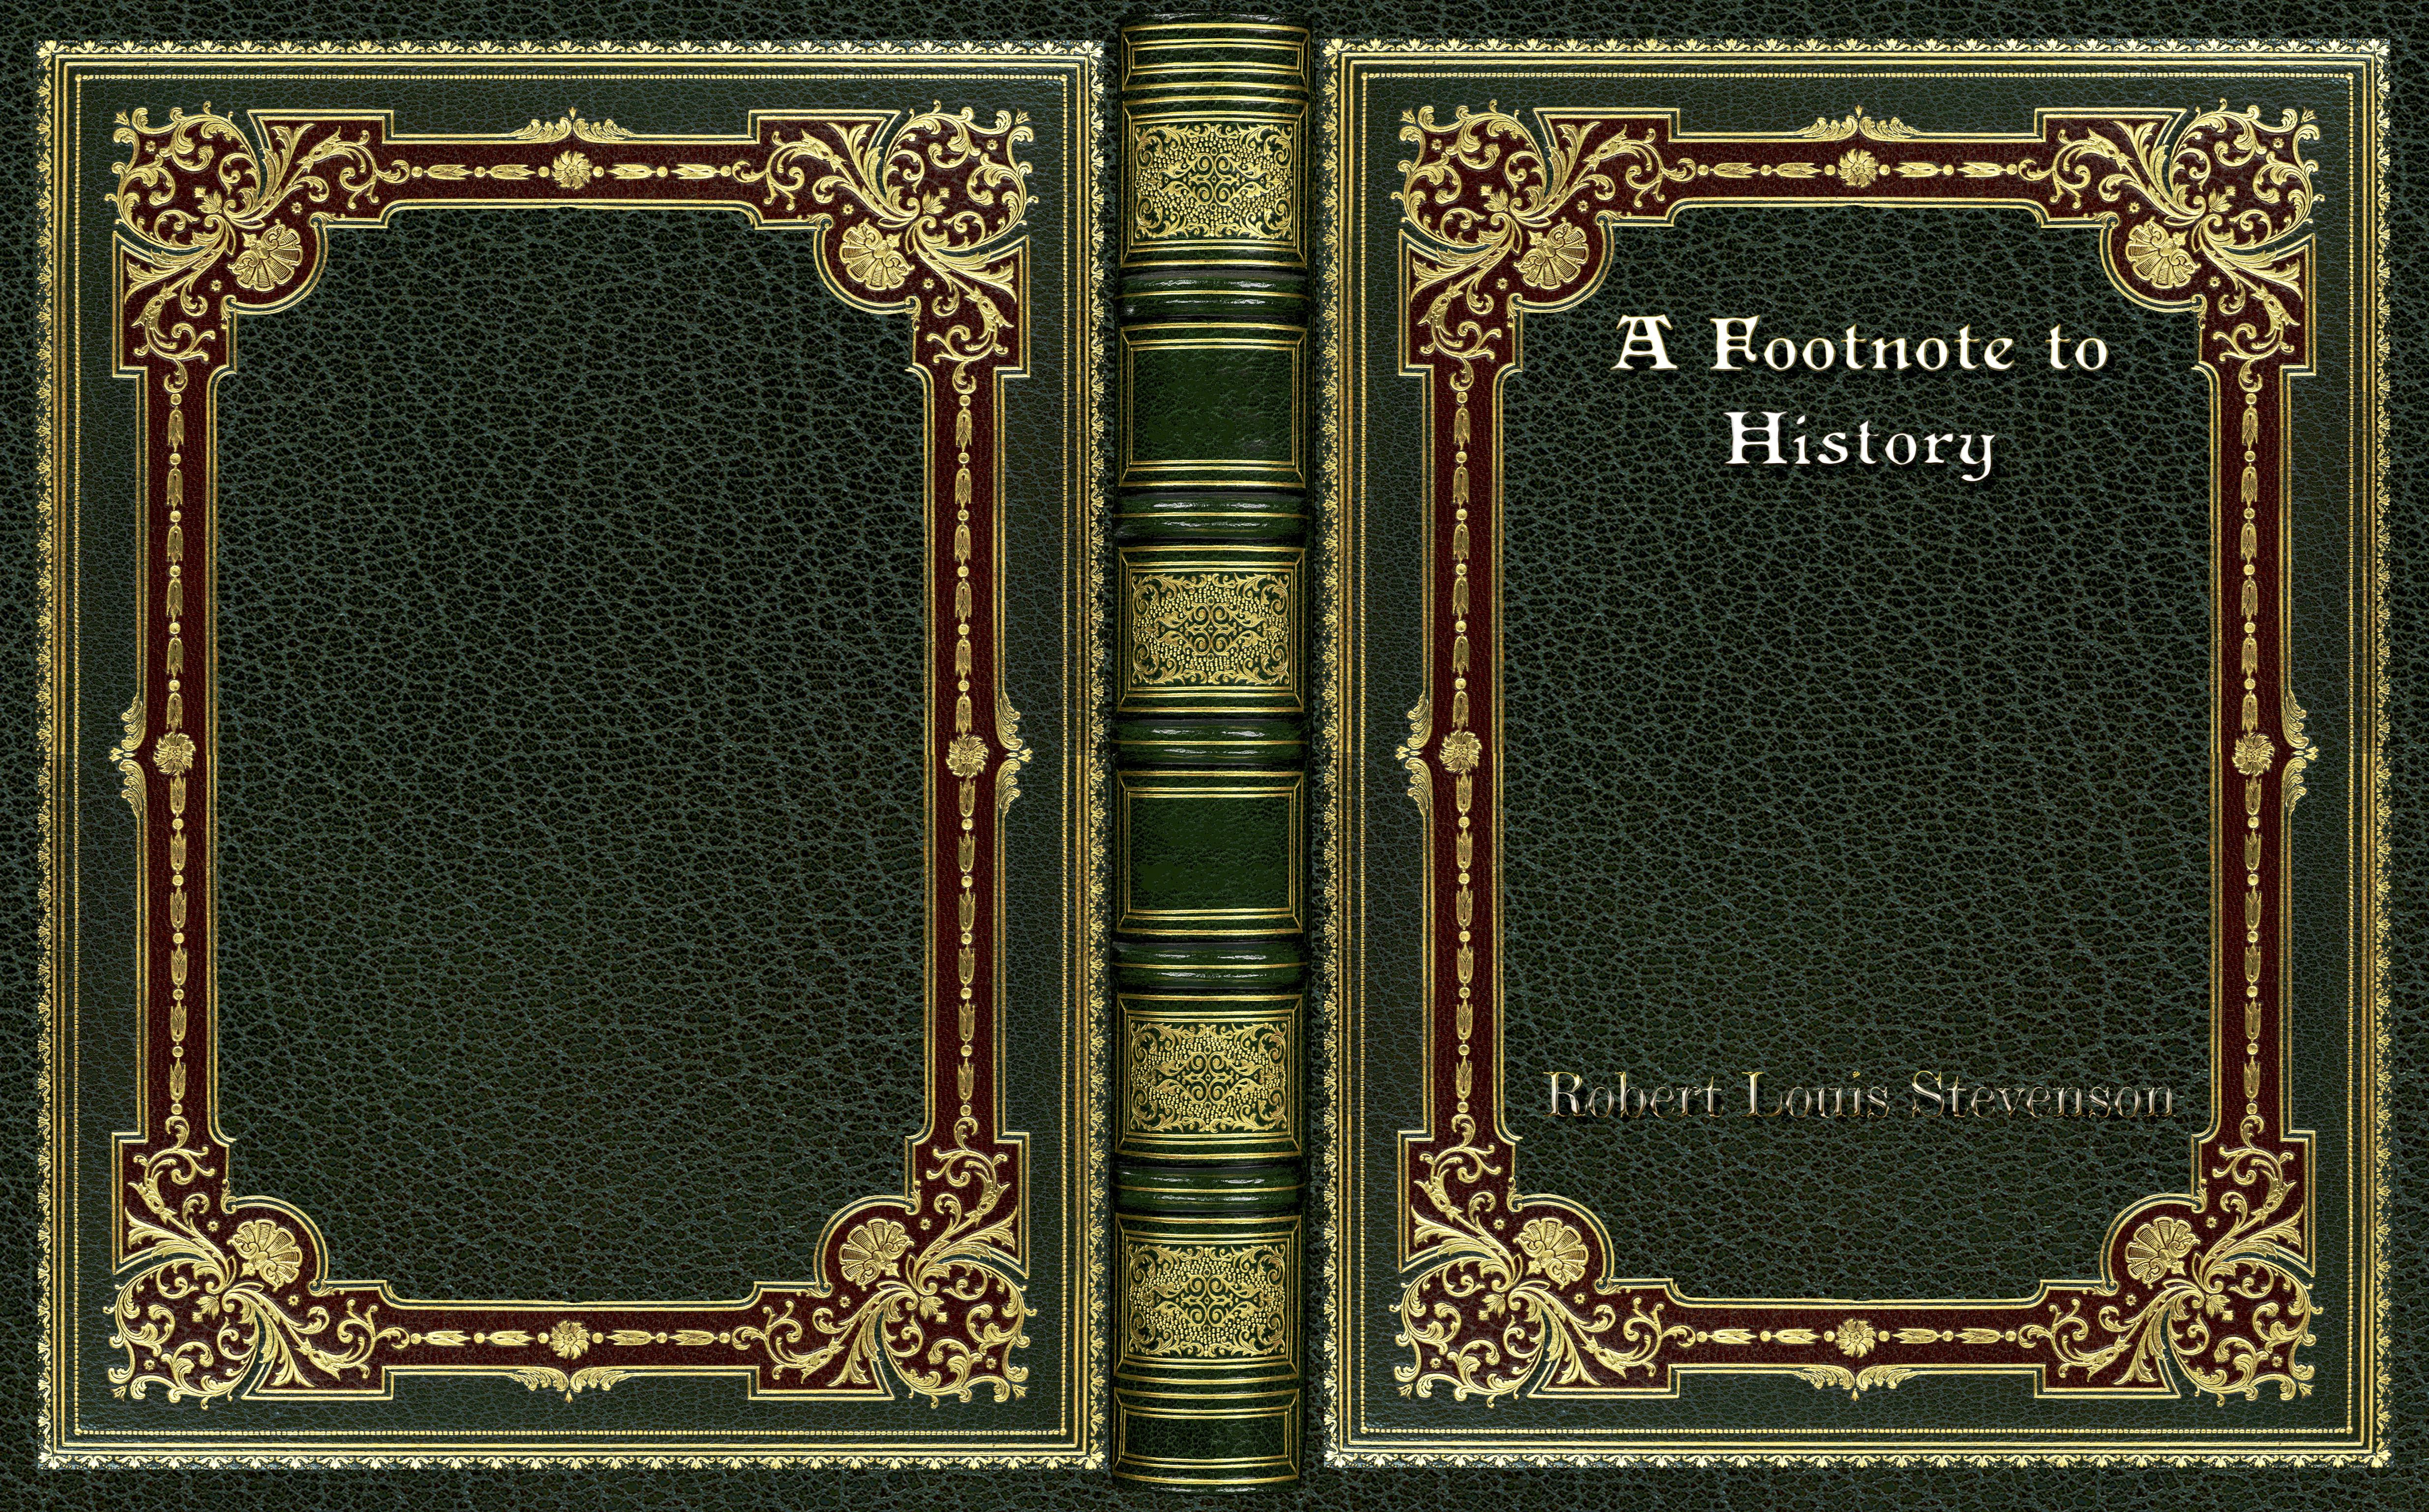 A Footnote to History cover image